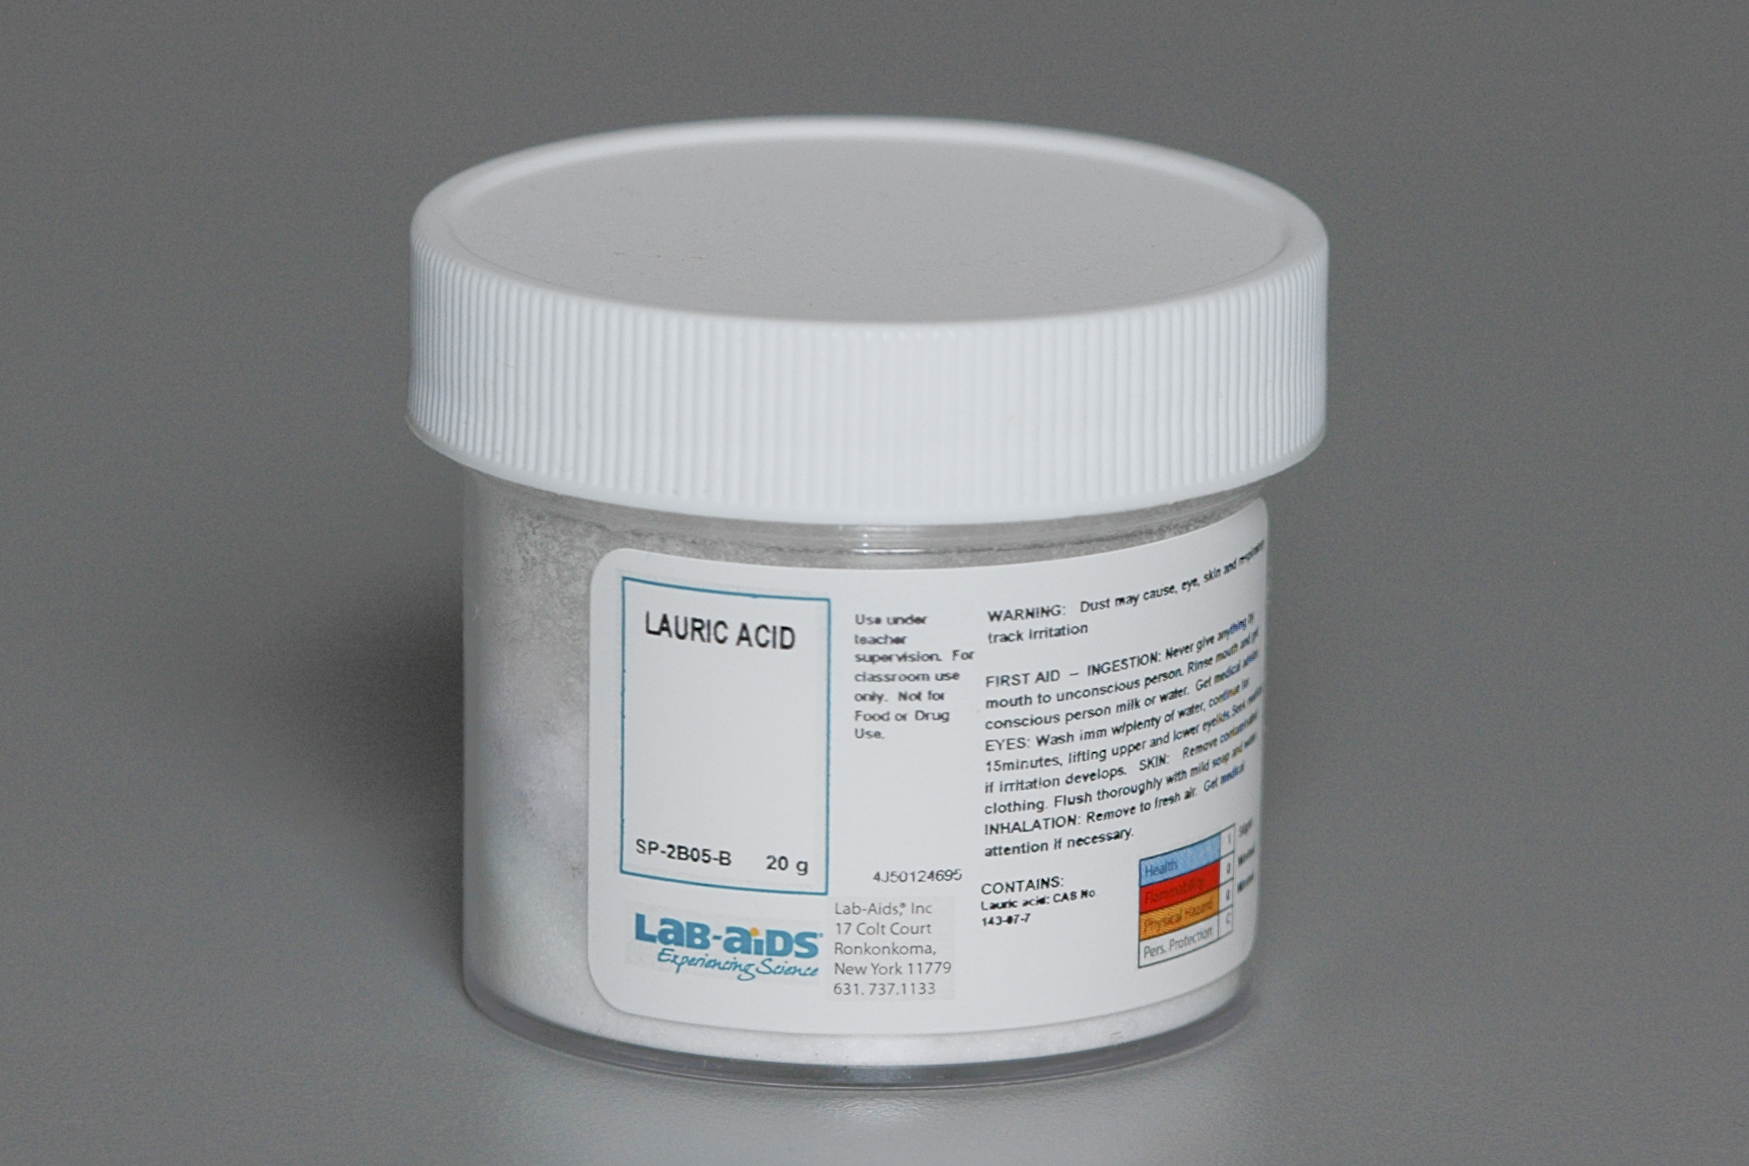 lauric acid Lauric acid information based on scientific evidence includes description, drug interactions, safety concerns, and effectiveness.